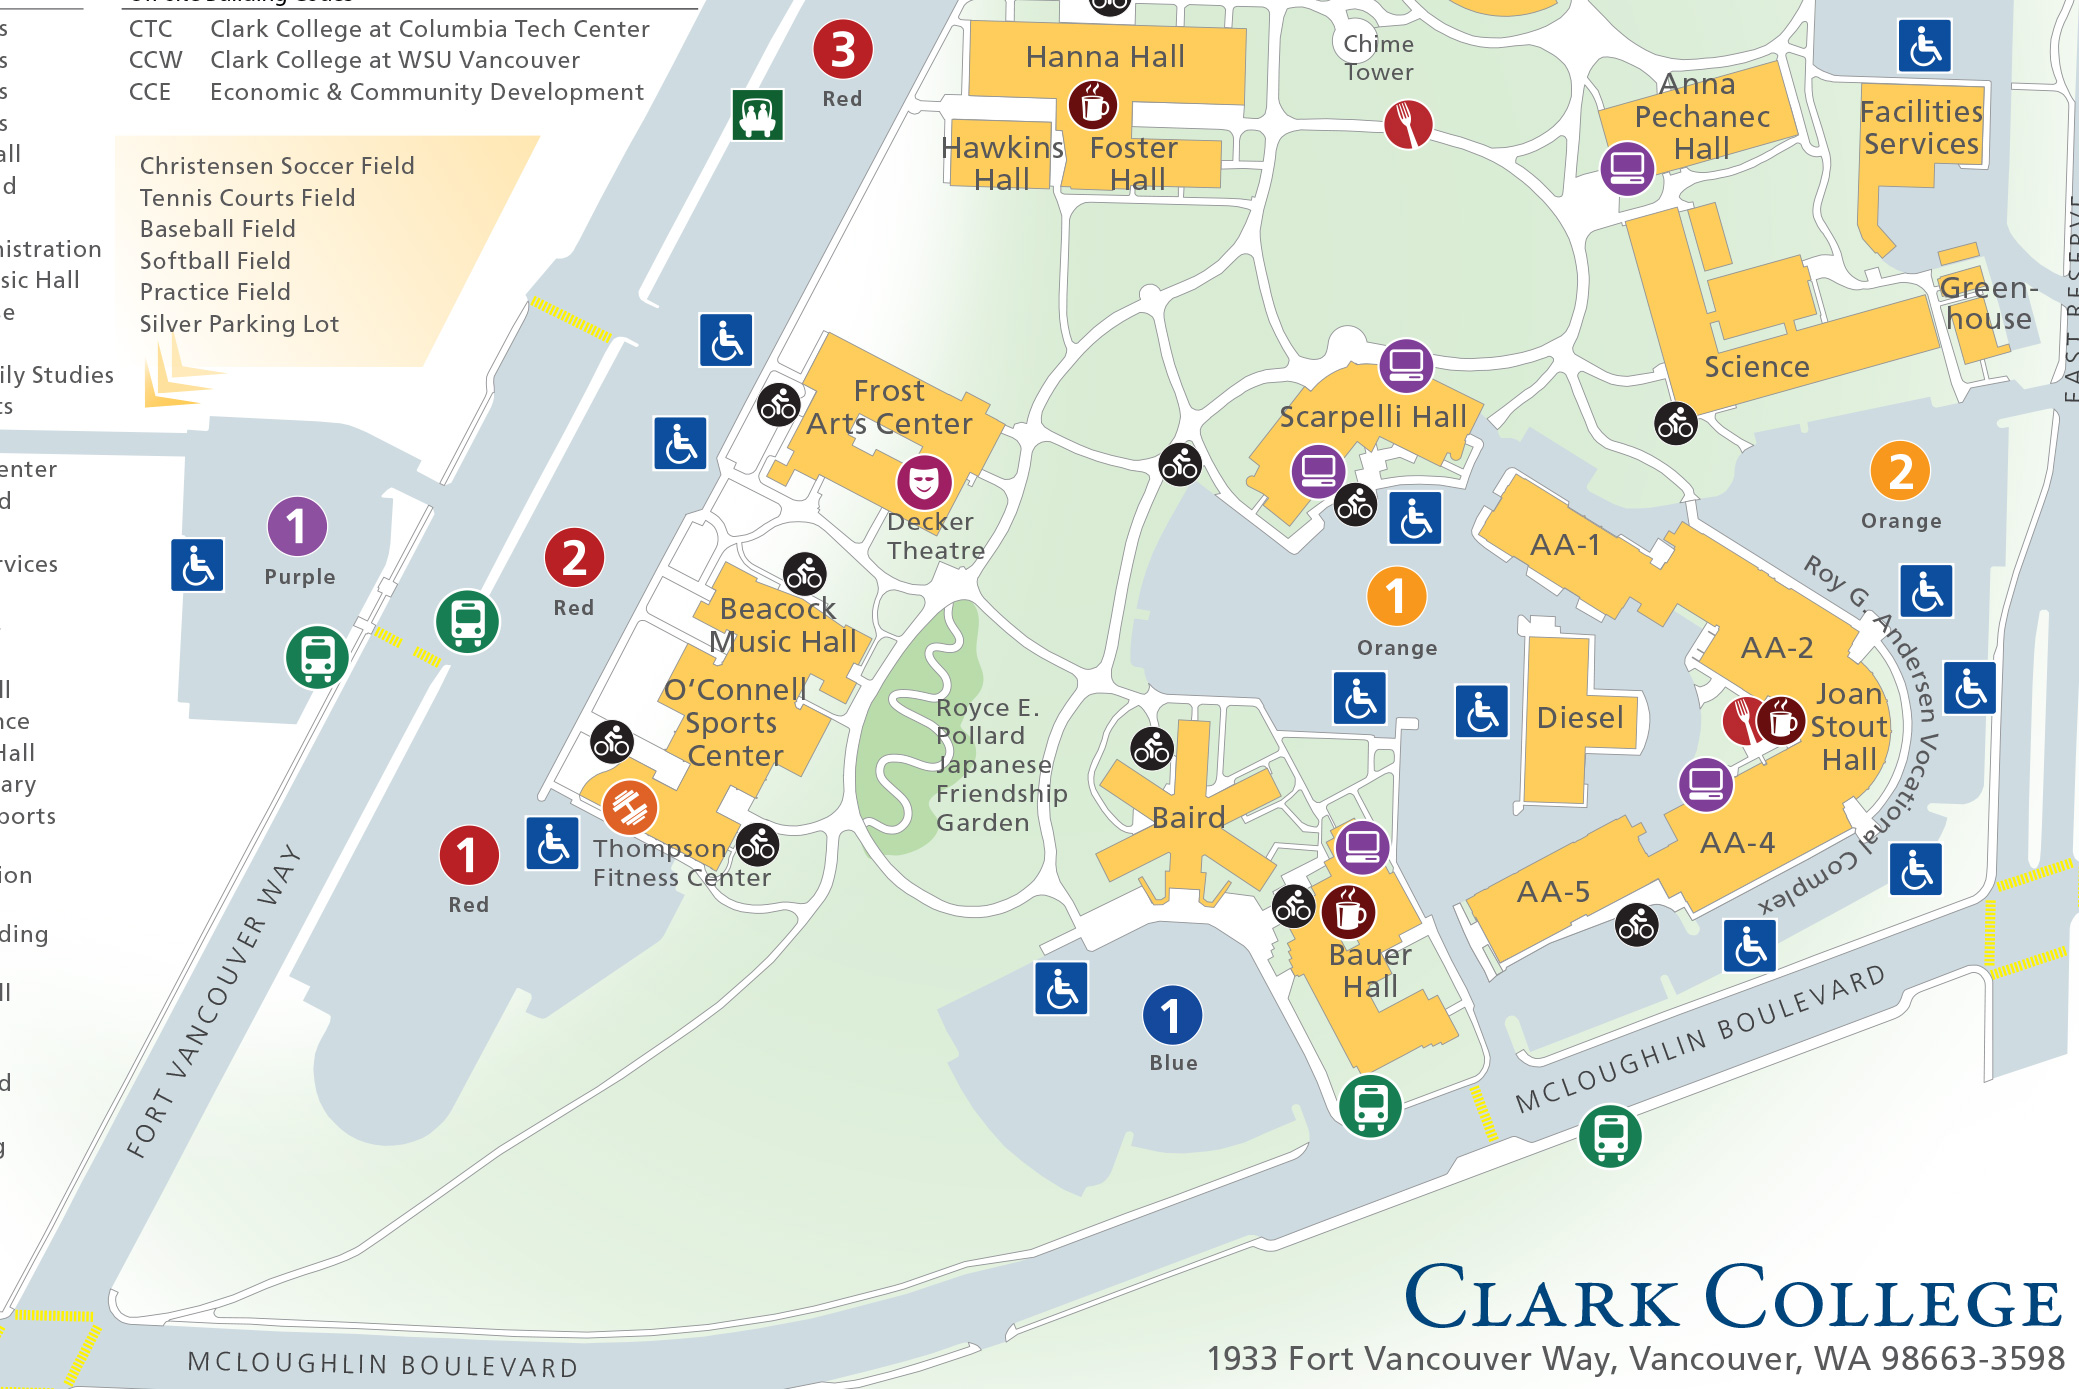 Clark College Map BMW 100th Birthday Celebration at LeMay info on May 15, 2016